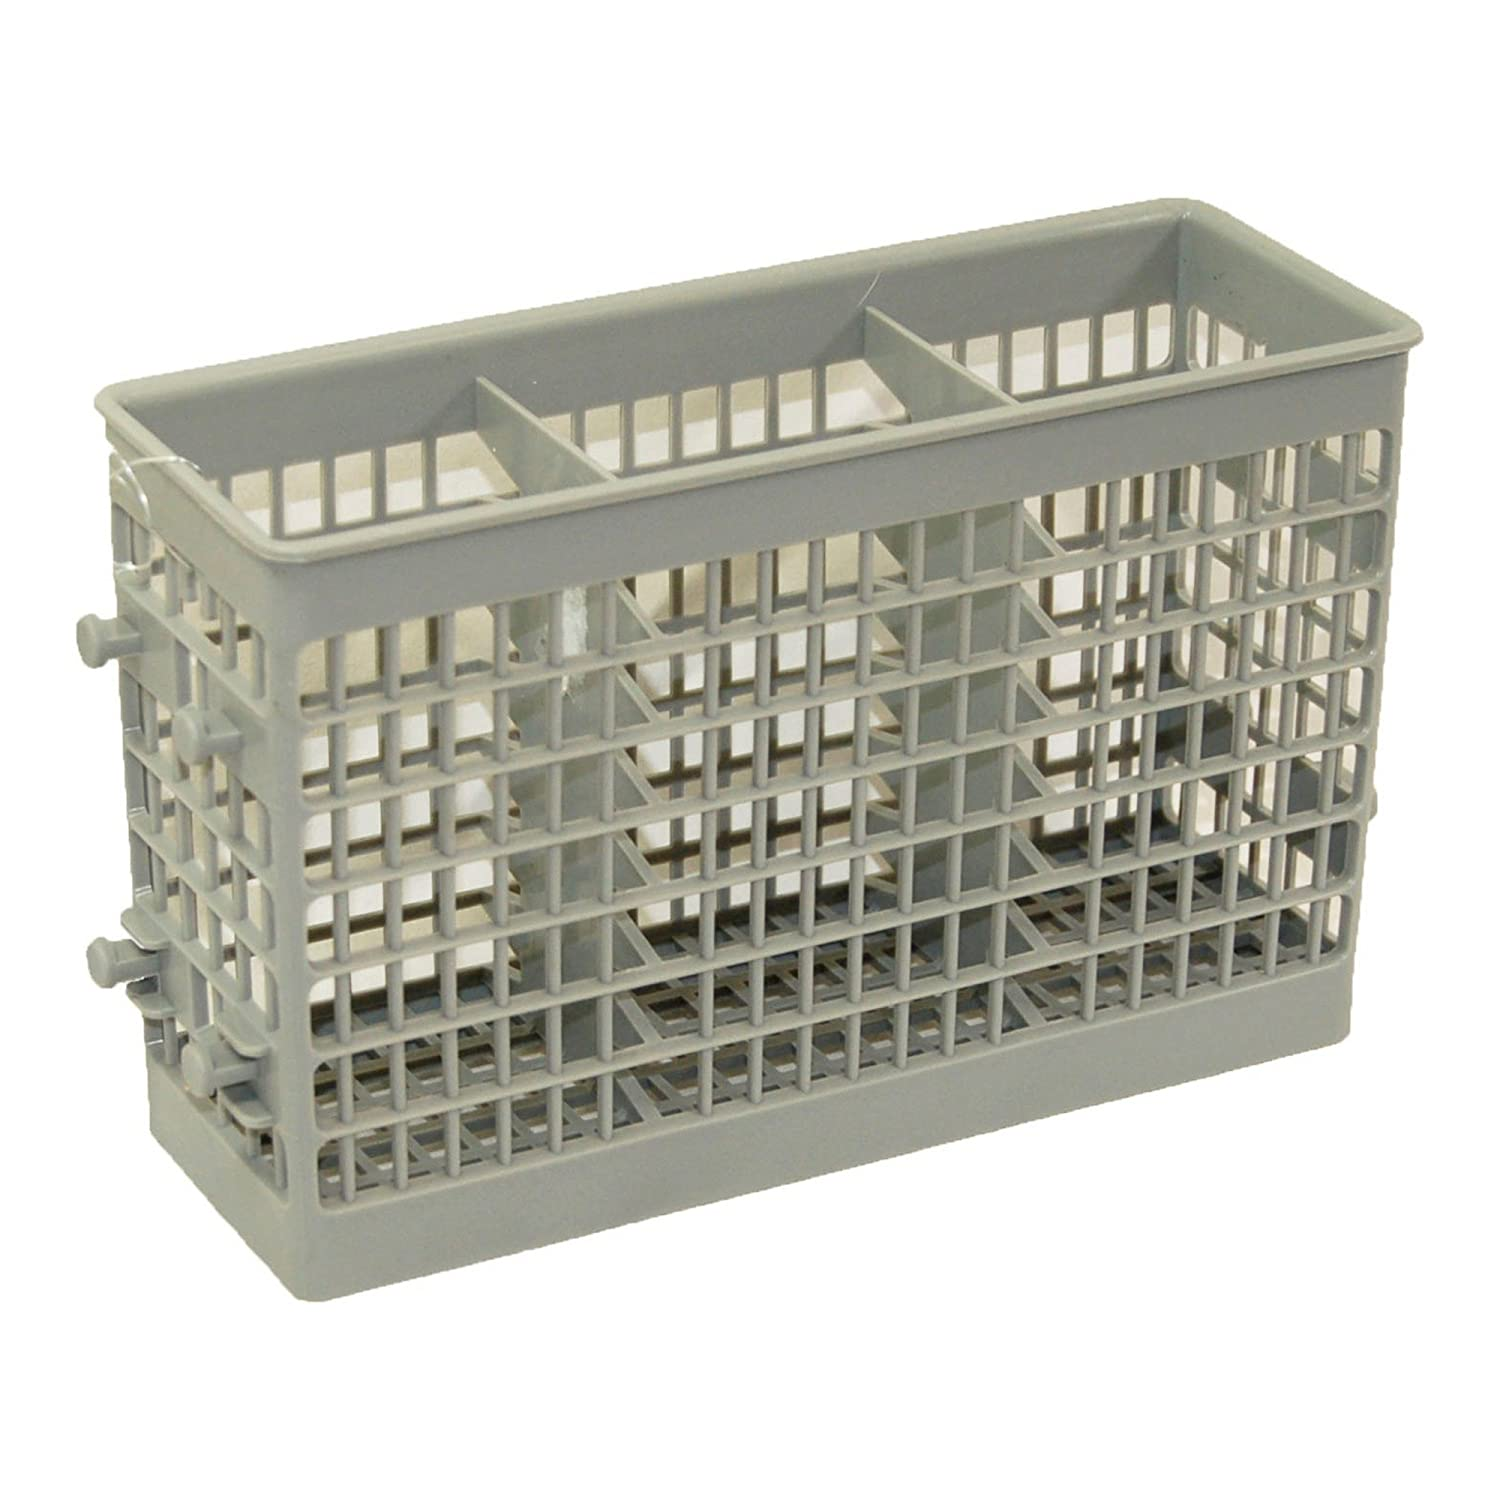 GE WD28X10195 Basket Silverware Middle